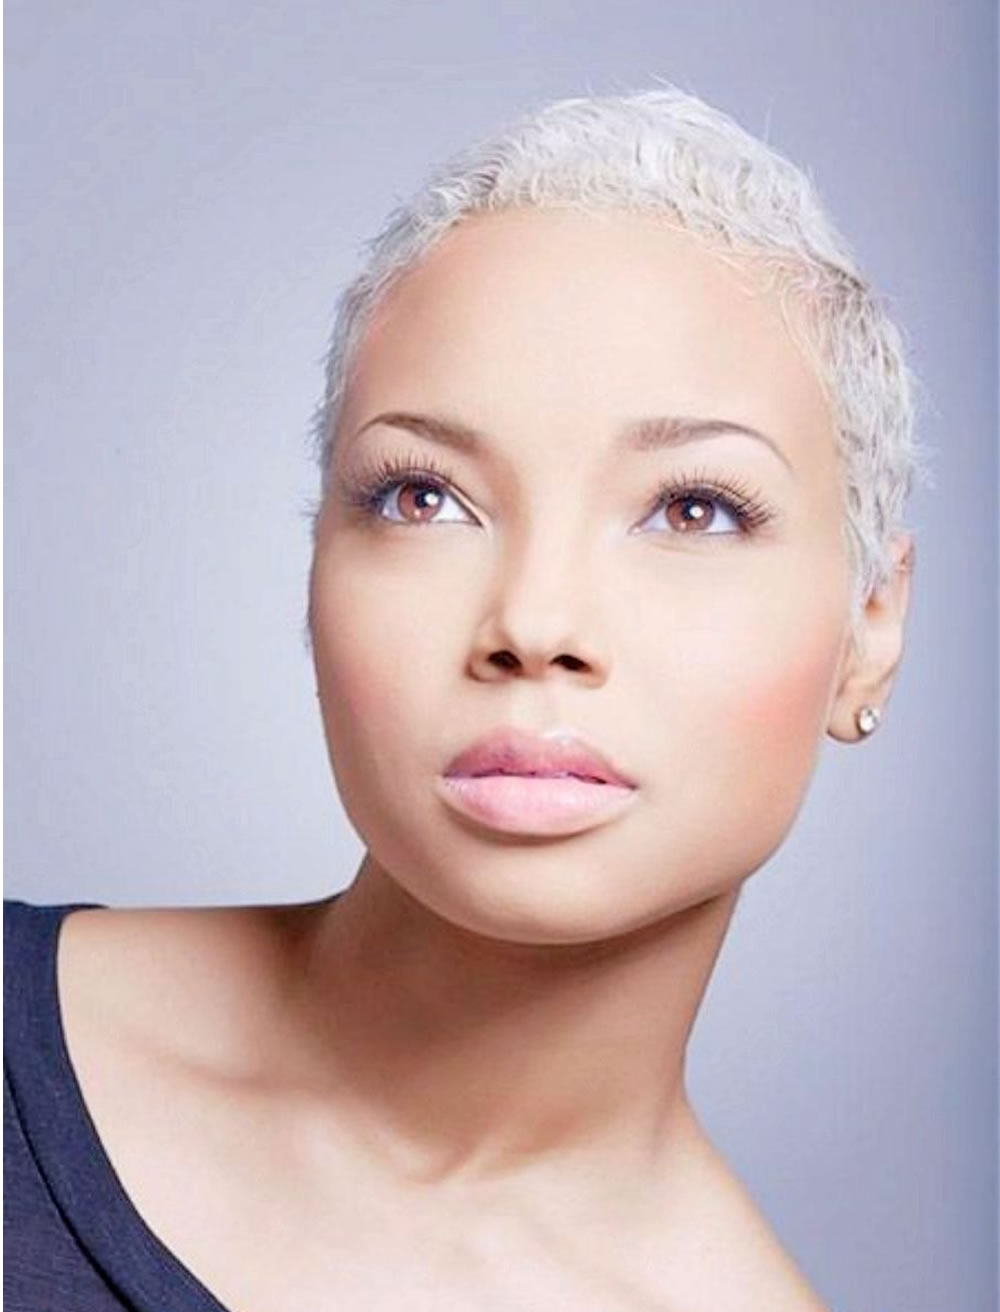 Grey Hair Color Very Short Pixie Haircut For Black Women 2017 Intended For Short Hairstyles For Black Women With Gray Hair (View 12 of 25)